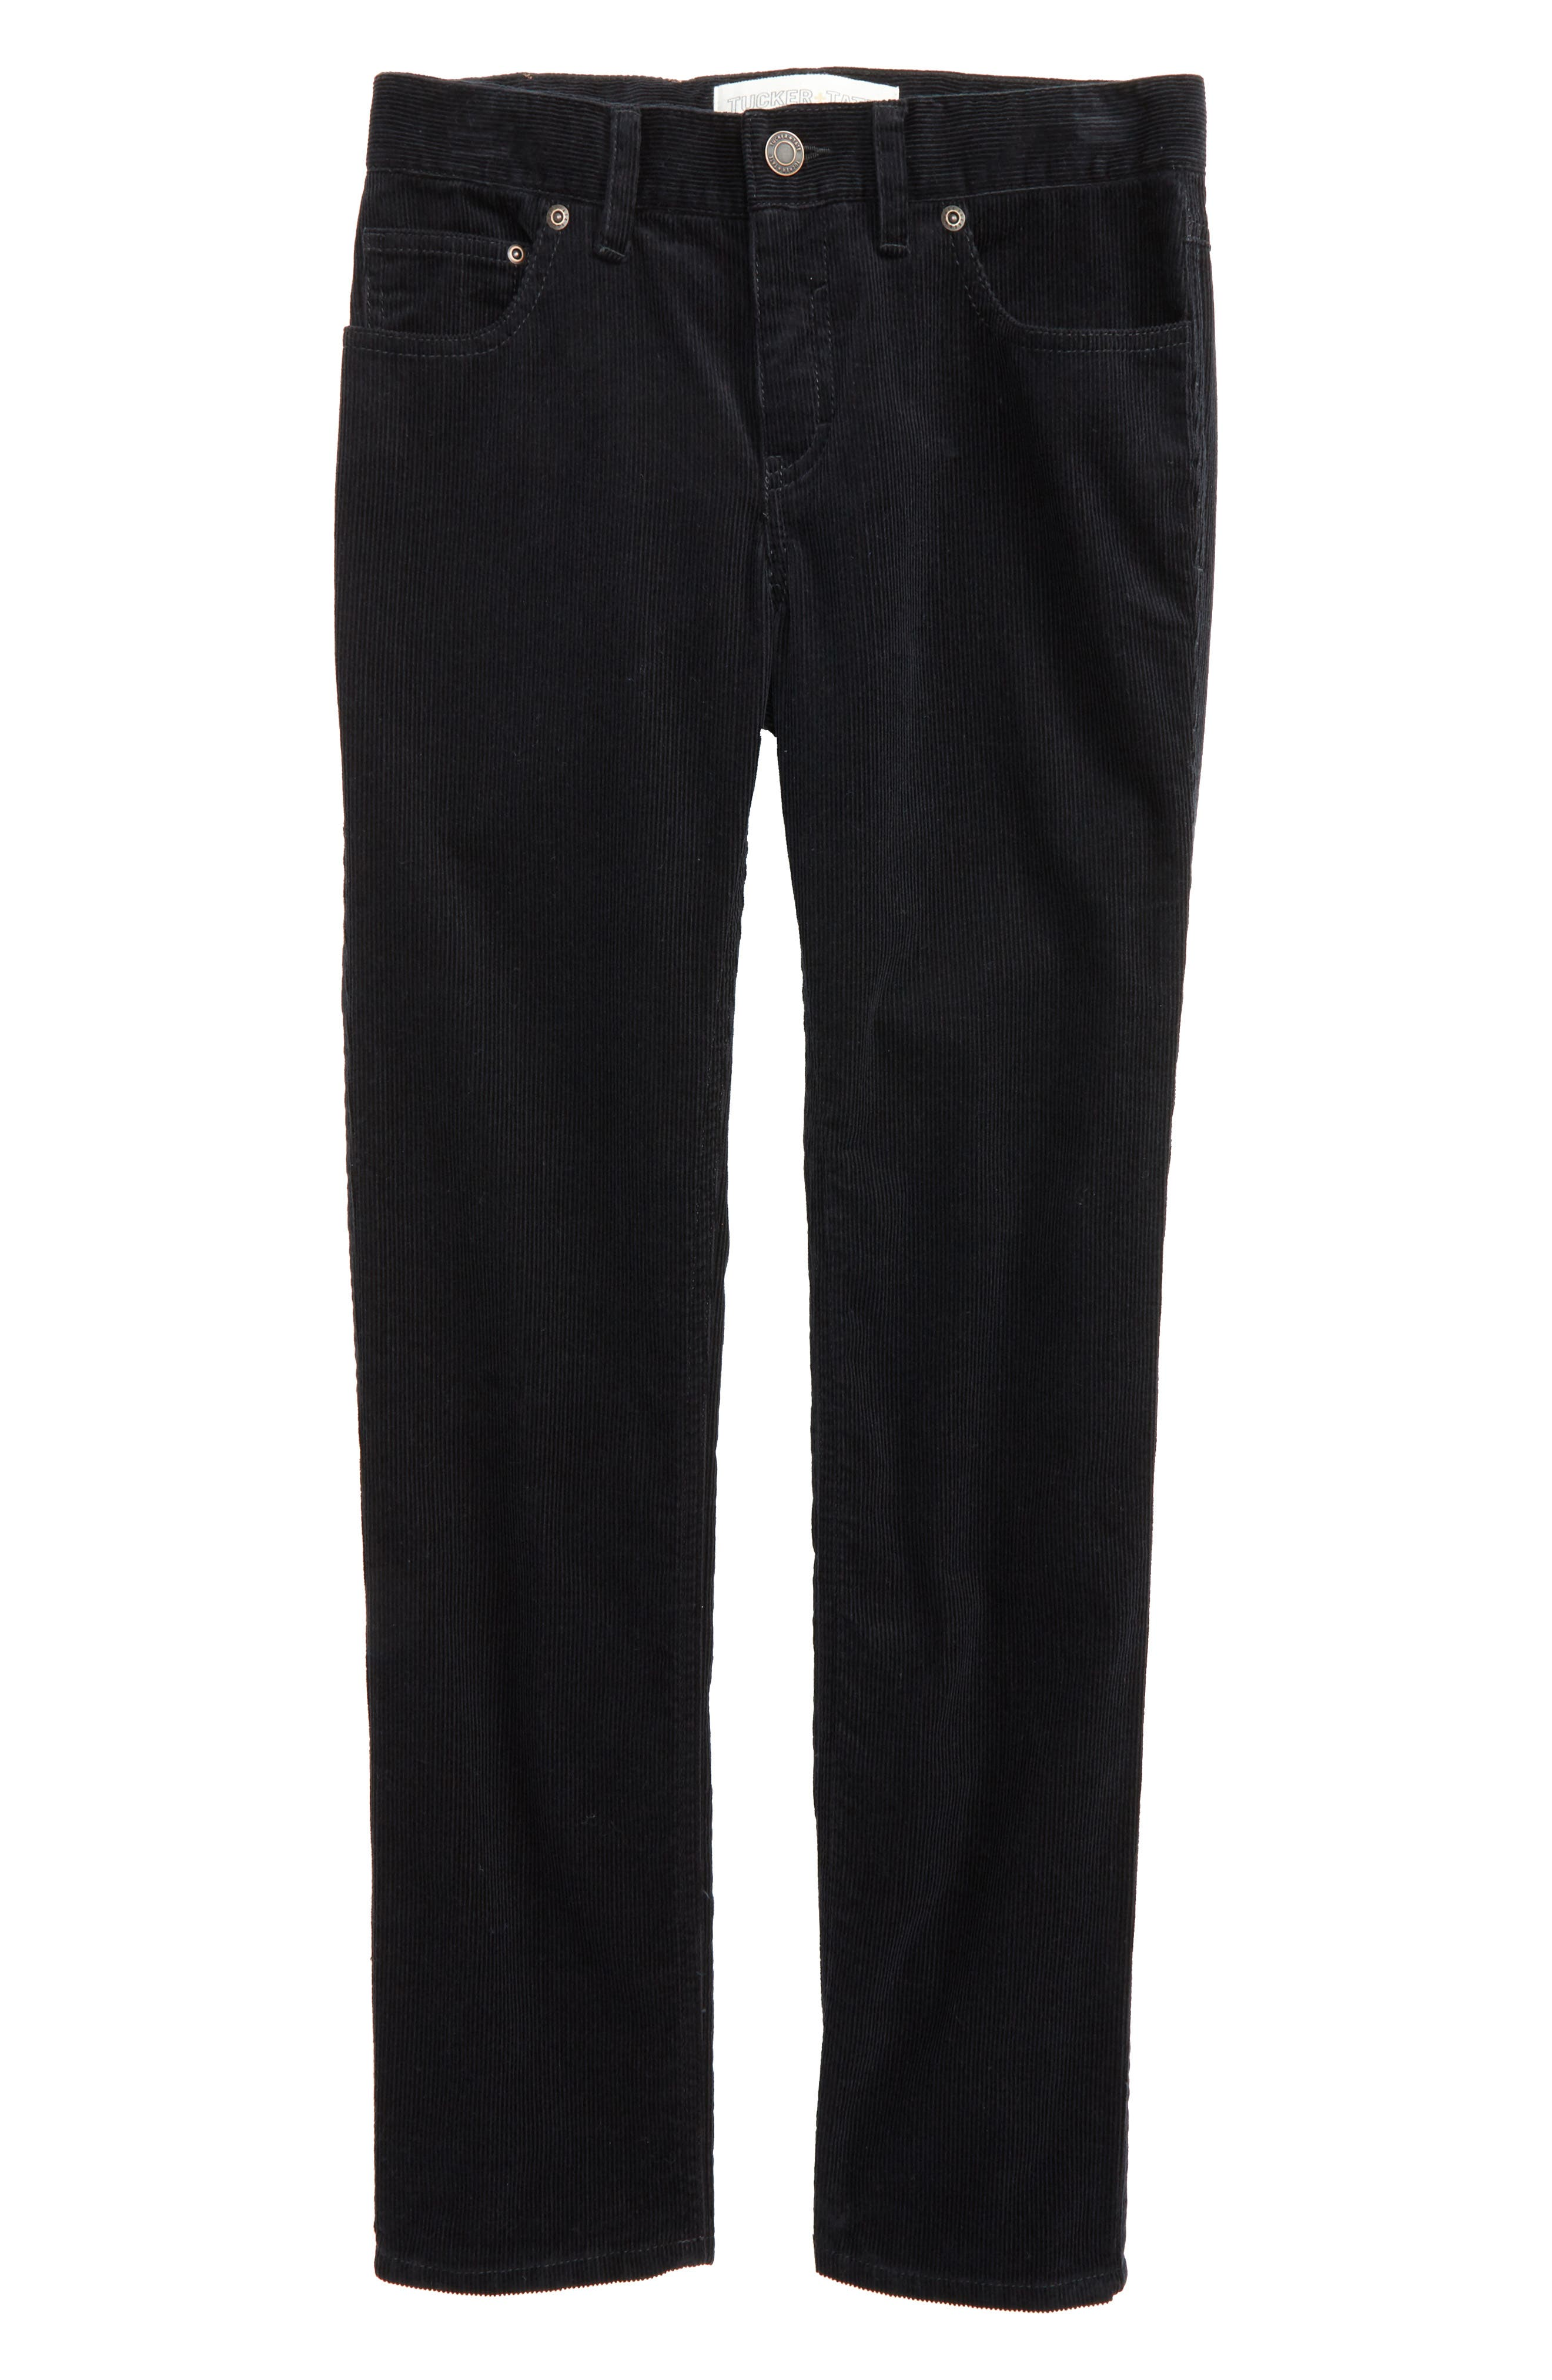 Alternate Image 1 Selected - Tucker + Tate 'Townsend' Corduroy Pants (Little Boys & Big Boys)